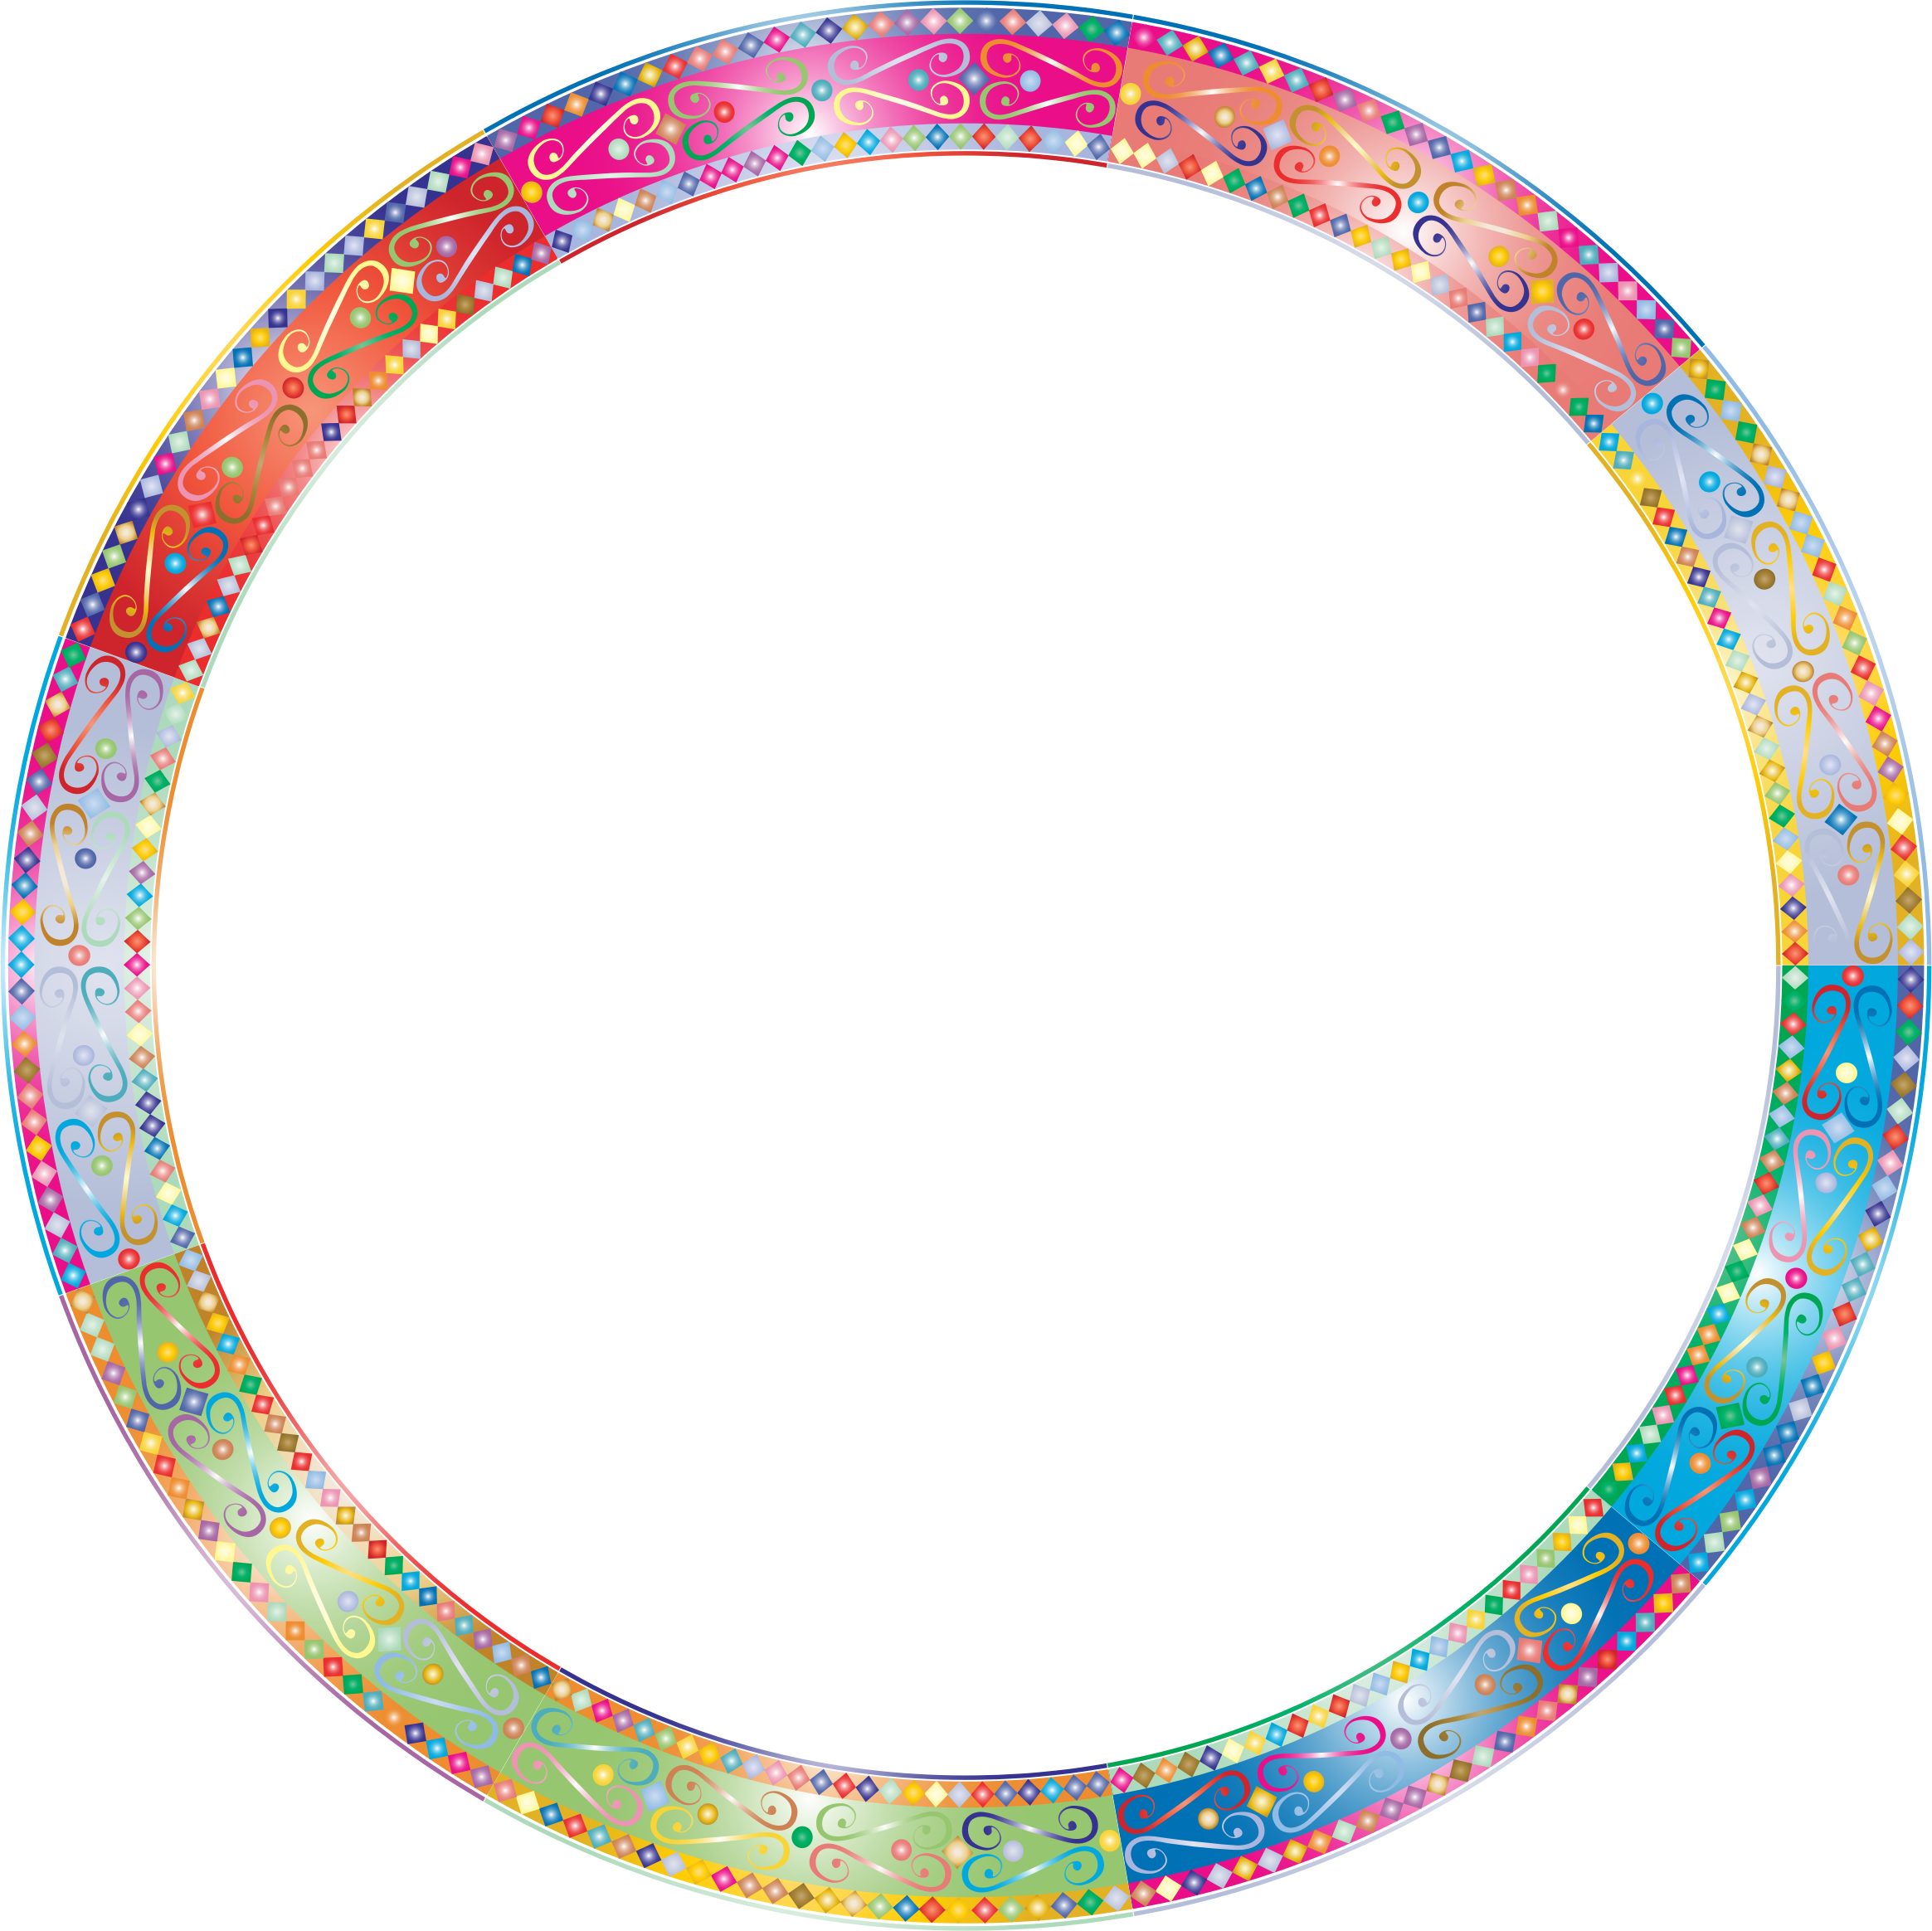 Clipart prismatic decorative ornamental. Circle frame png